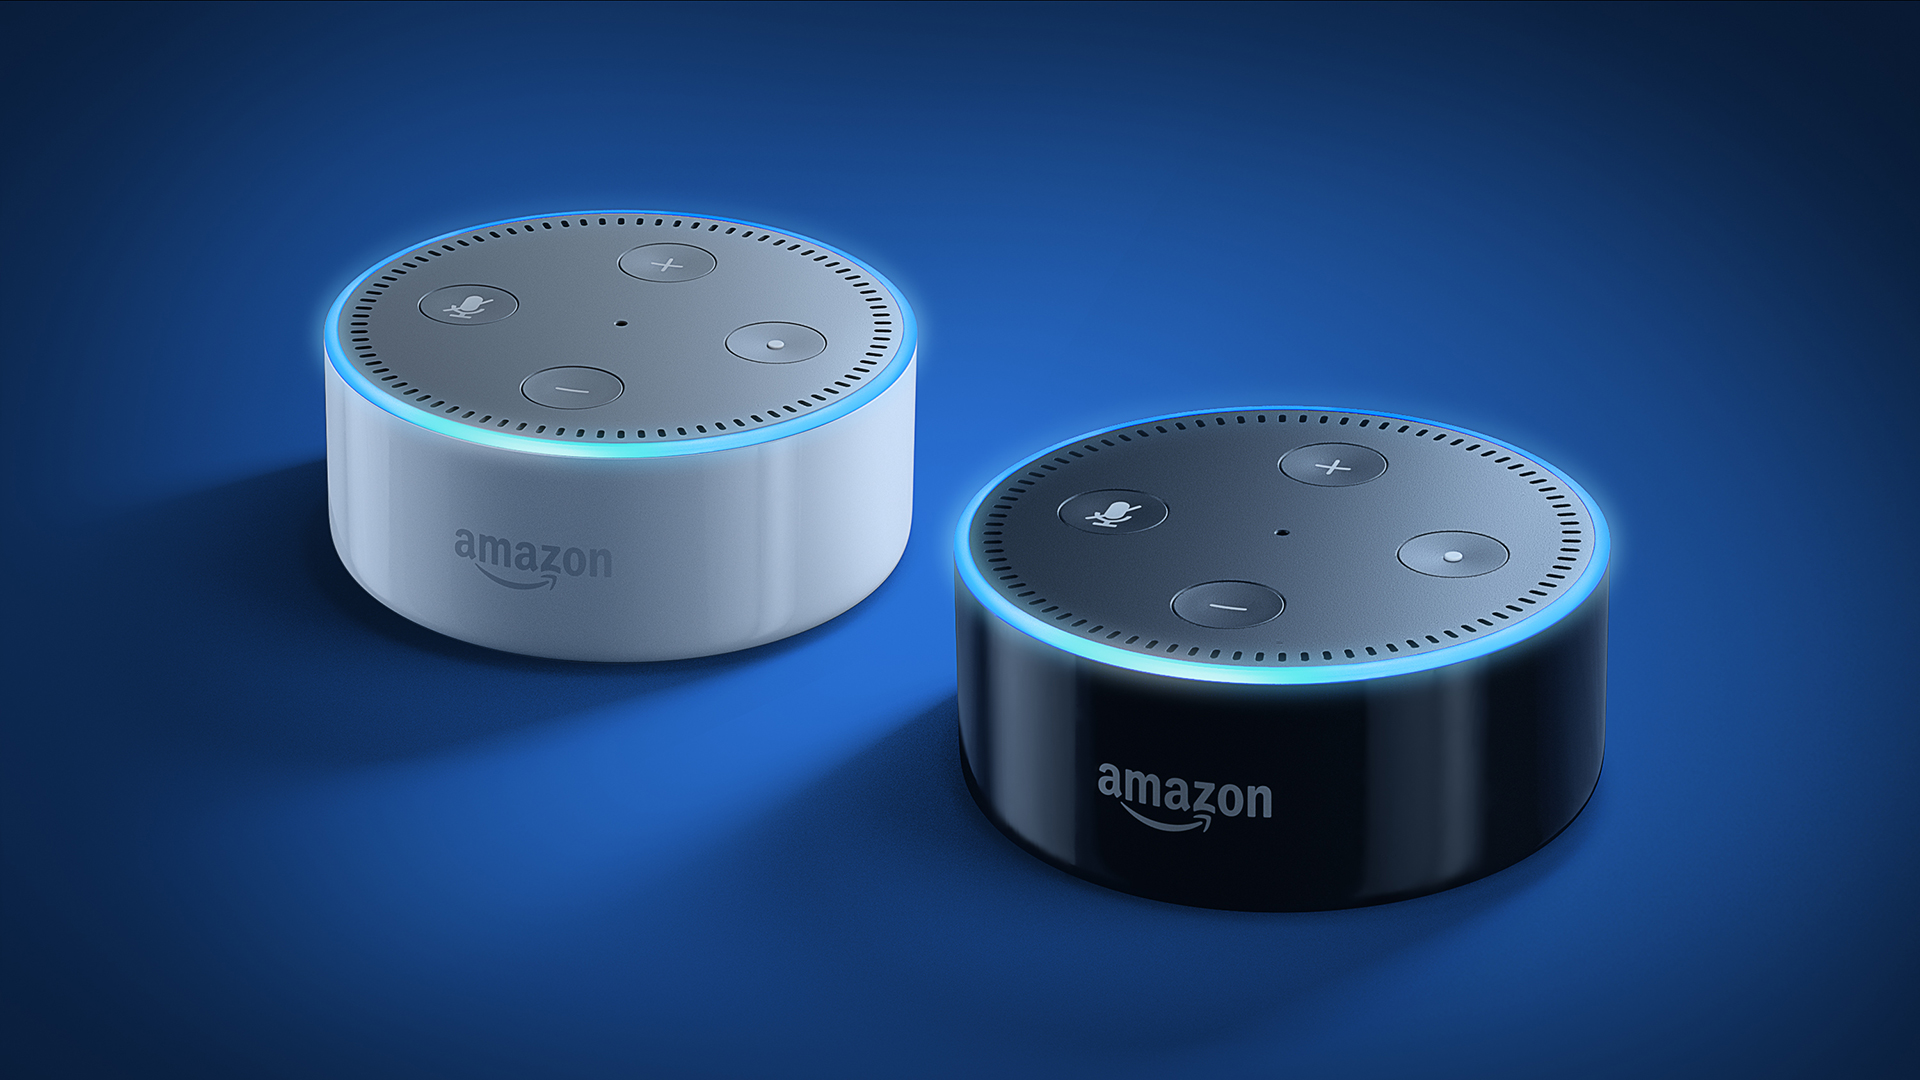 Alexa devices maintain 70% market share in U.S. according to survey